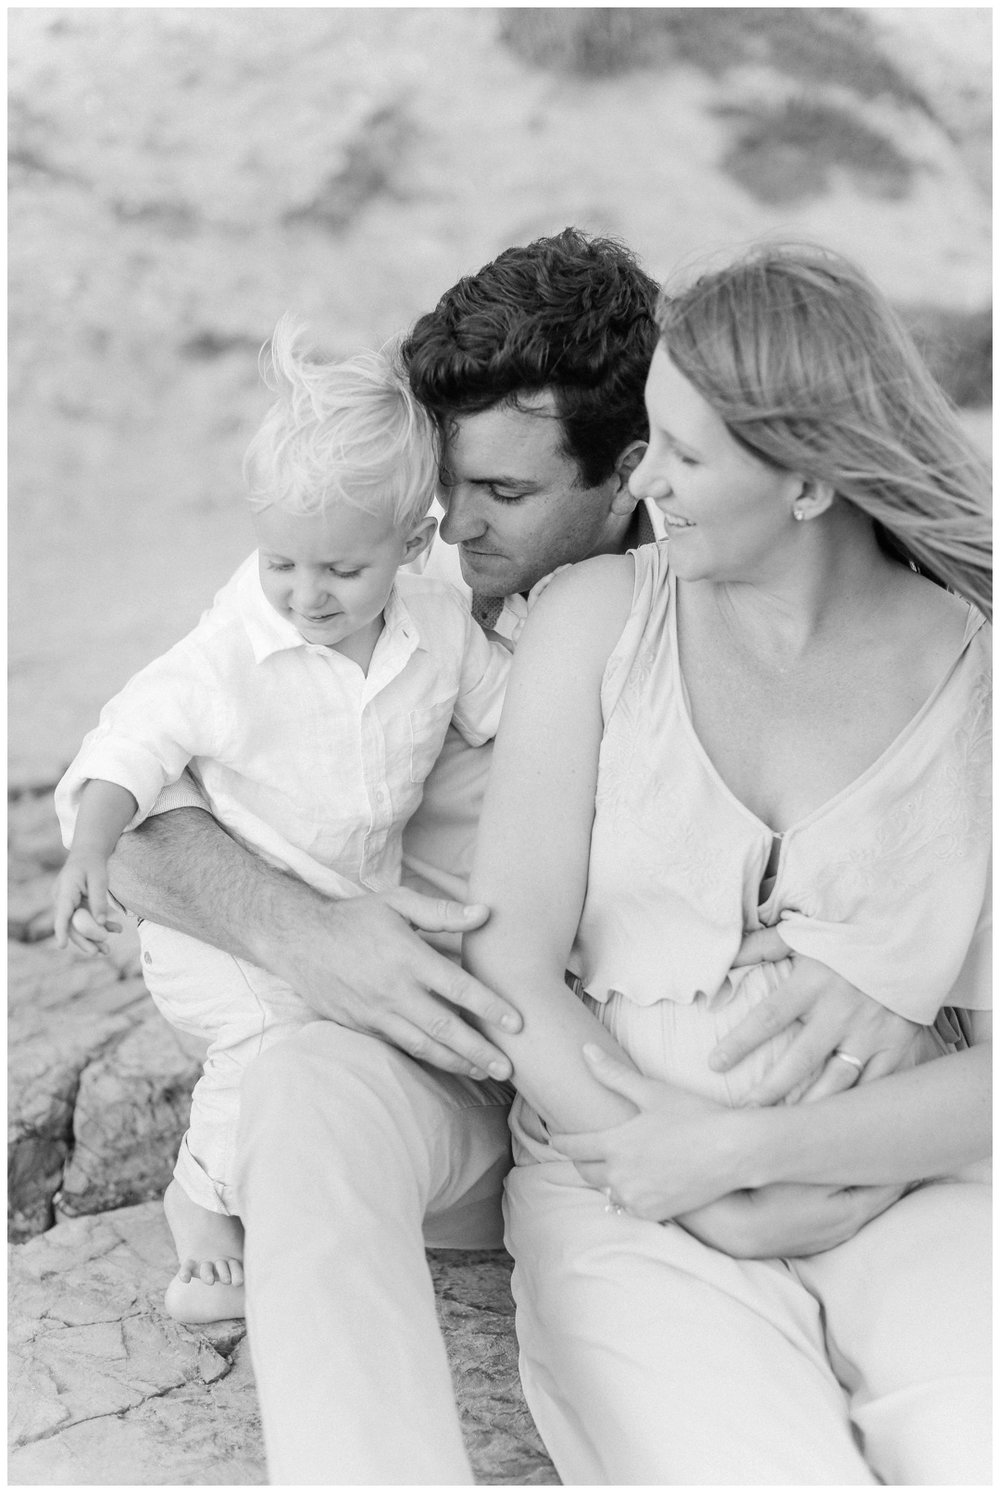 The_Epler's_Family_Newport_Beach_Family_Photographer_Orange_County_Family_Photography_Cori_Kleckner_Photography_Orange_County_Beach_Photographer_Family_Photos_Session_Crystal_Cove_Session__1419.jpg